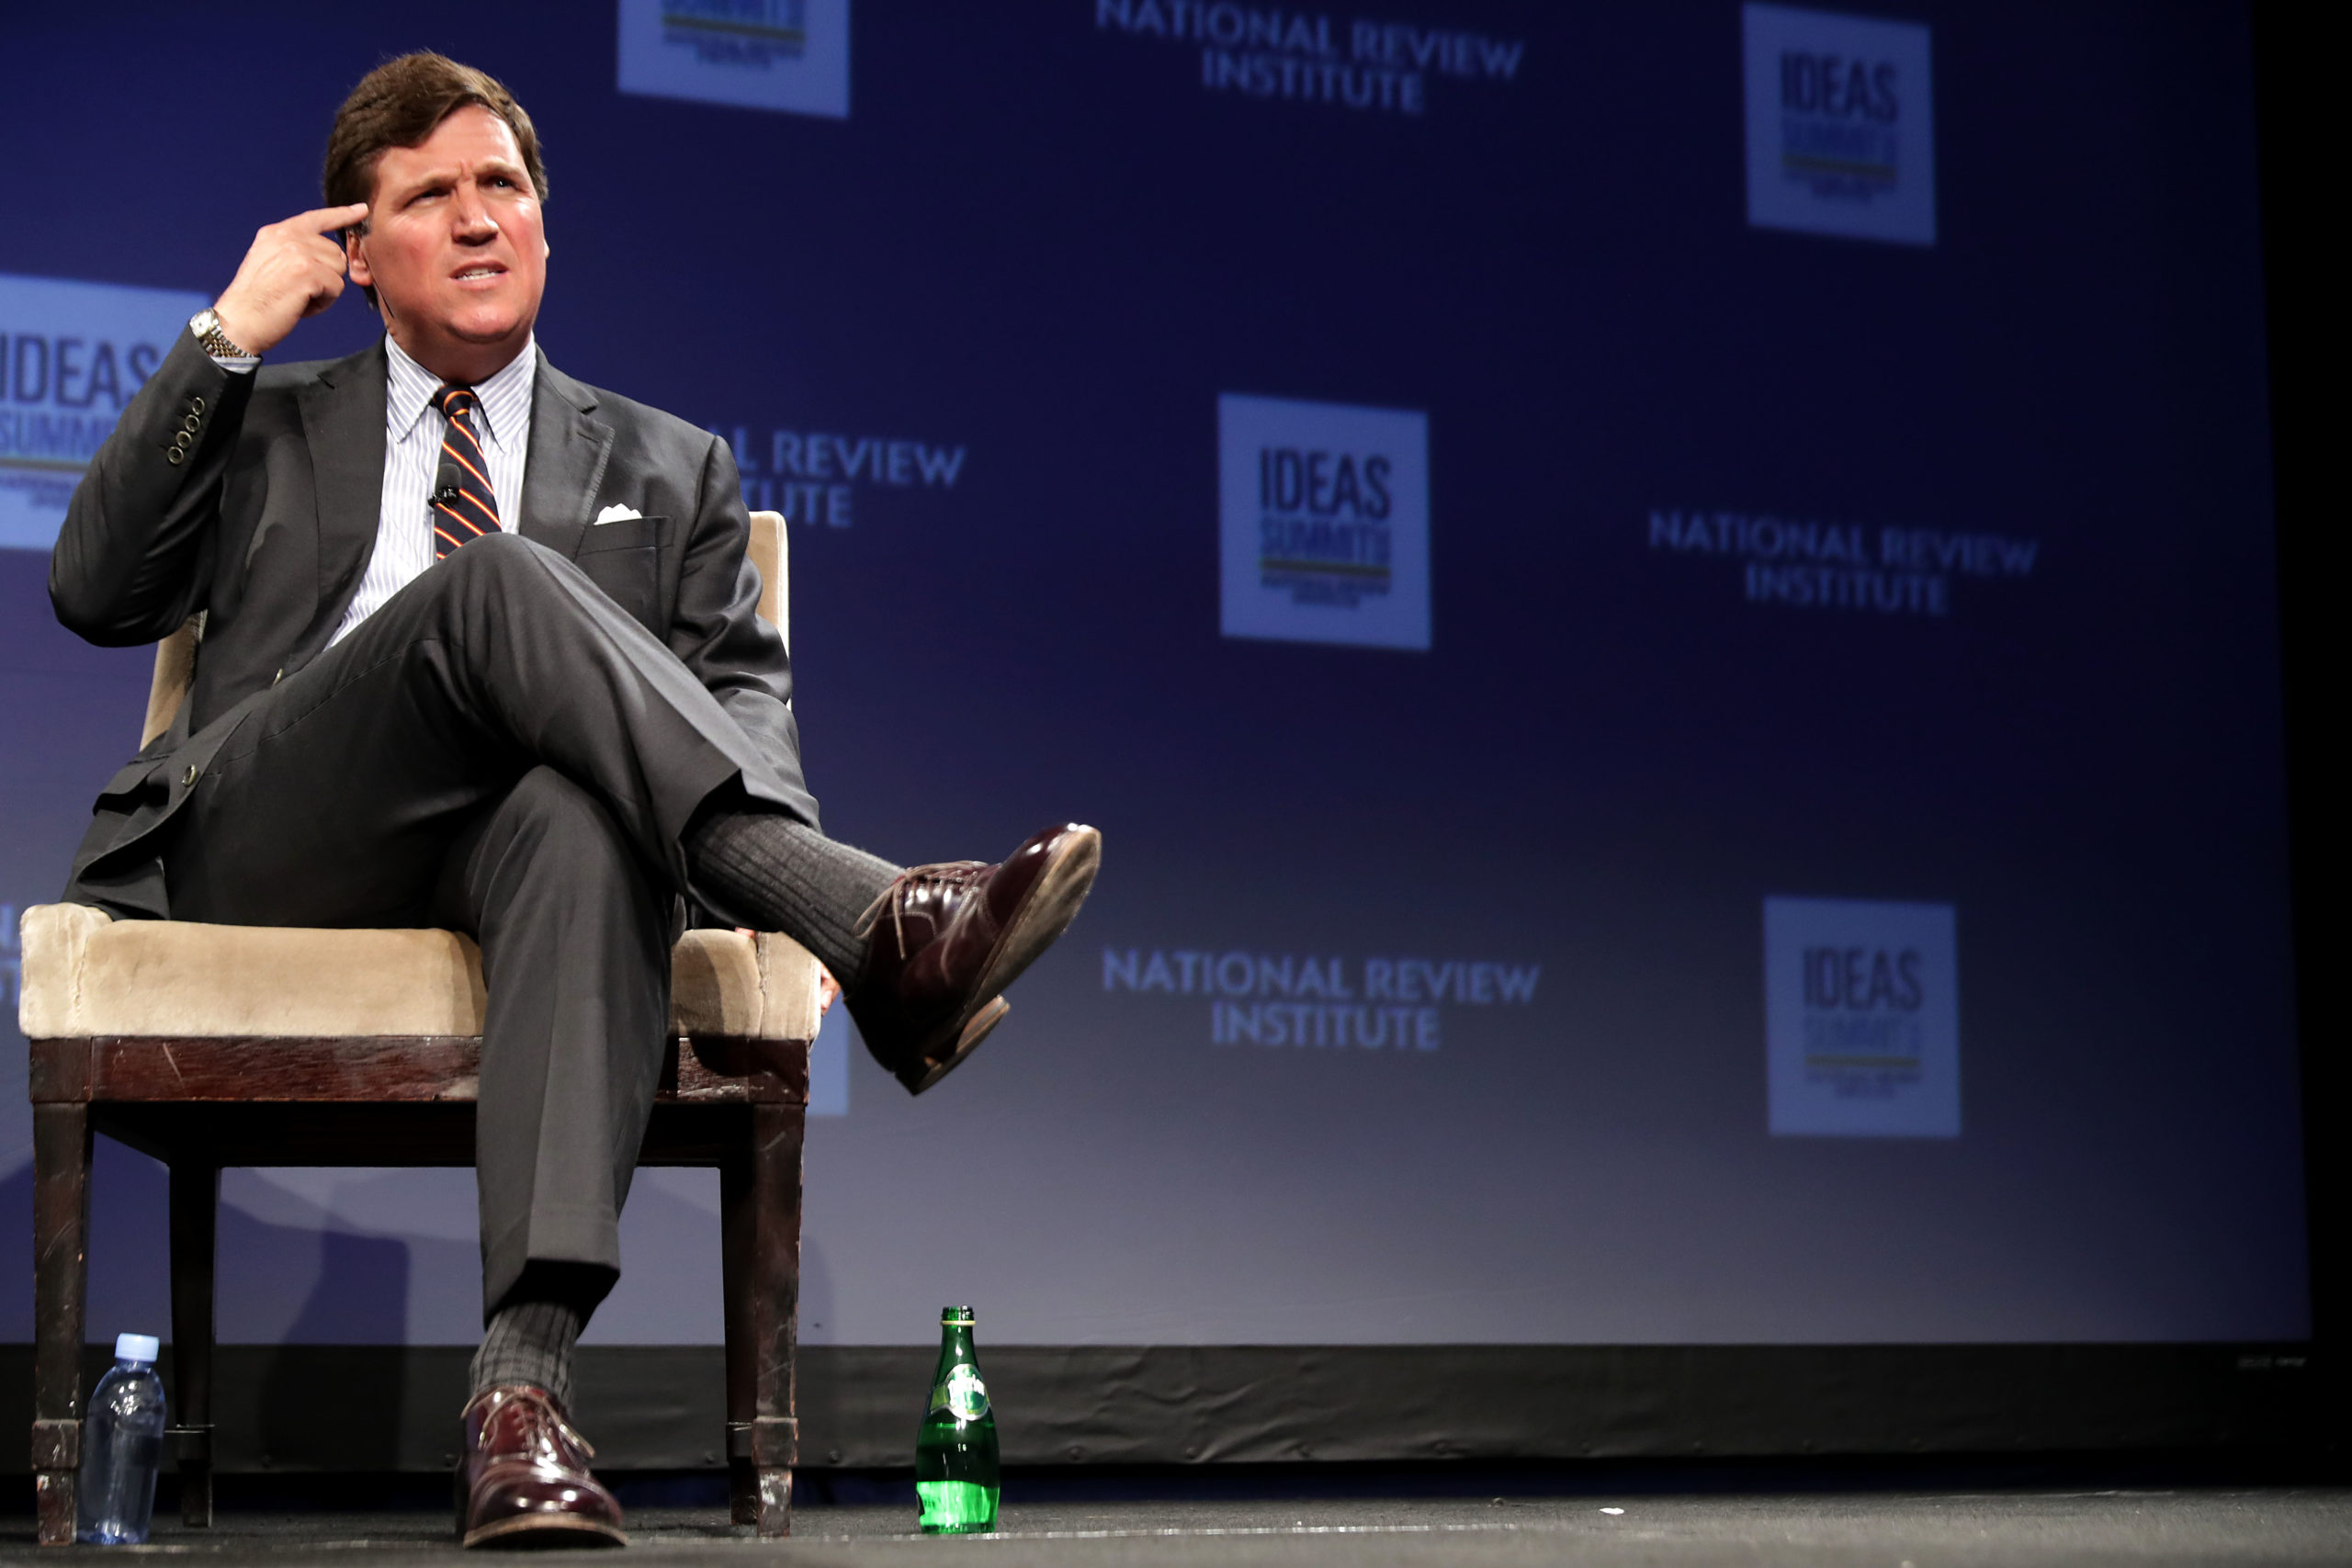 Fox News host Tucker Carlson discusses 'Populism and the Right' during the National Review Institute's Ideas Summit at the Mandarin Oriental Hotel March 29, 2019 in Washington, DC. (Chip Somodevilla/Getty Images)